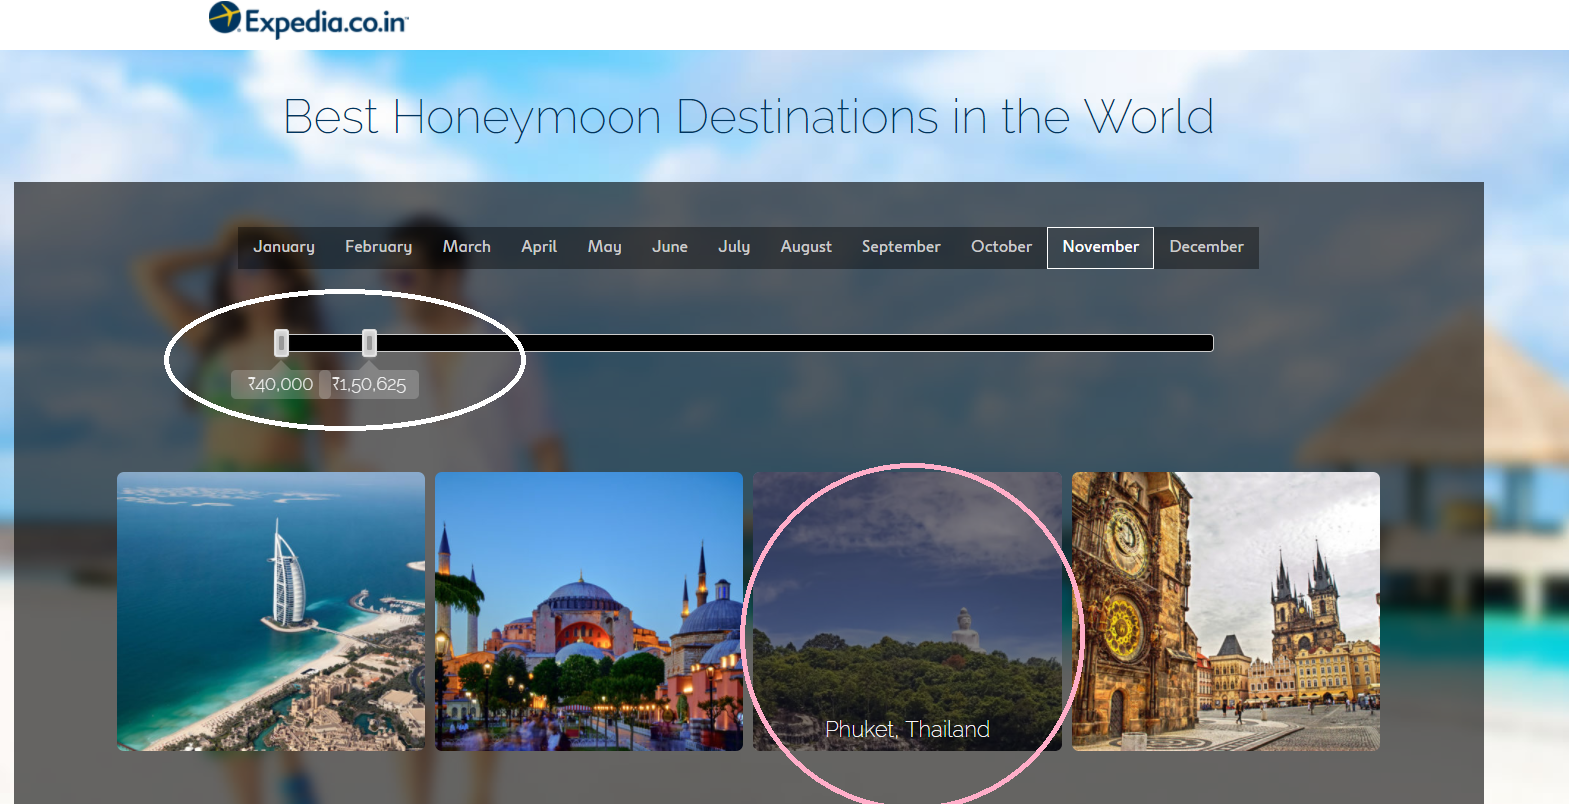 Best Honeymoon Destinations for Indian Couples